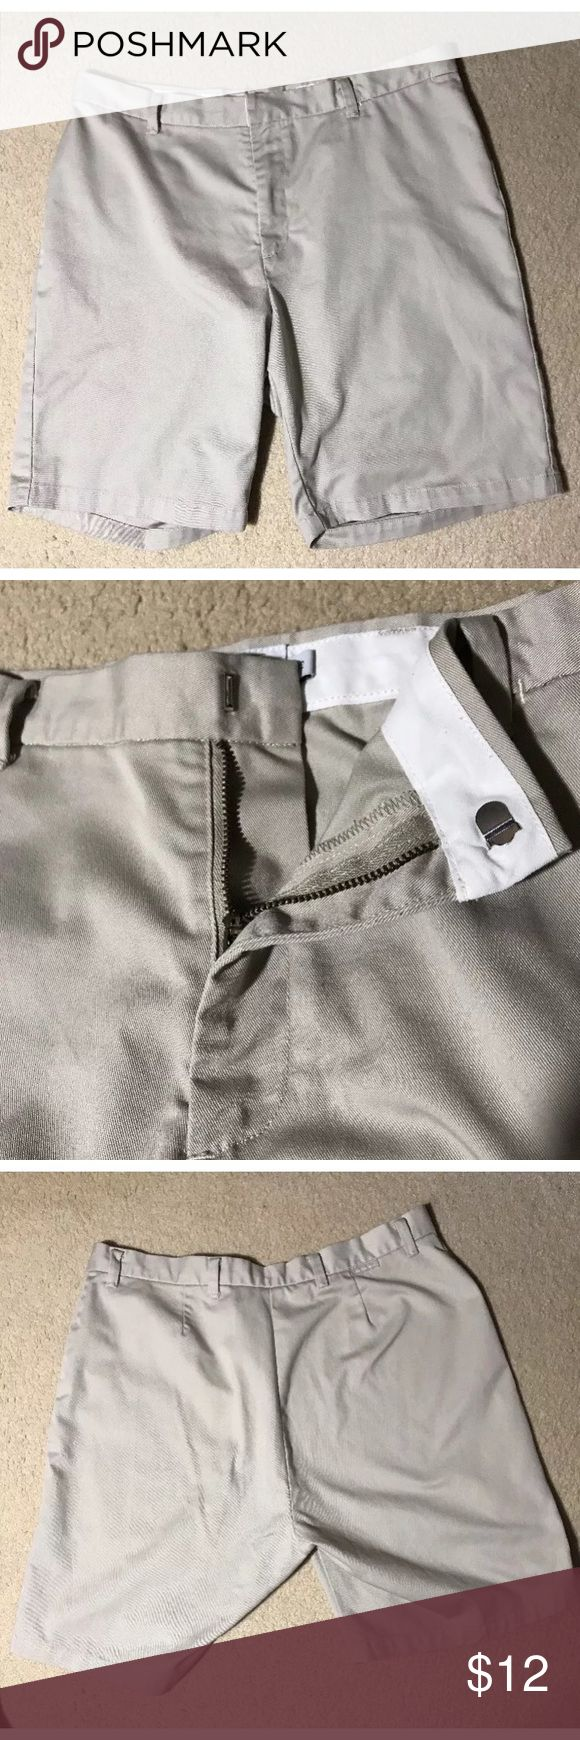 """🌷Calvin Klein Light Beige Bermuda/Walking Shorts Excellent Pre-loved Condition! Calvin Klein Womens Light Beige Bermuda/Walking Shorts Flat Front 8"""" Inseam Size 12 Size: 12 Measured laying down flat: 18.5"""" in length, 17"""" across waist 8"""" inseam Material: 65% Polyester 35% Cotton Description: Very Nice Condition Light Beige Walking/Bermuda Short Clasp hook and zip front. One small front pocket. Check your measurements, no stretch in fabric.  Comes from a Smoke Free Home Calvin Klein Jeans…"""